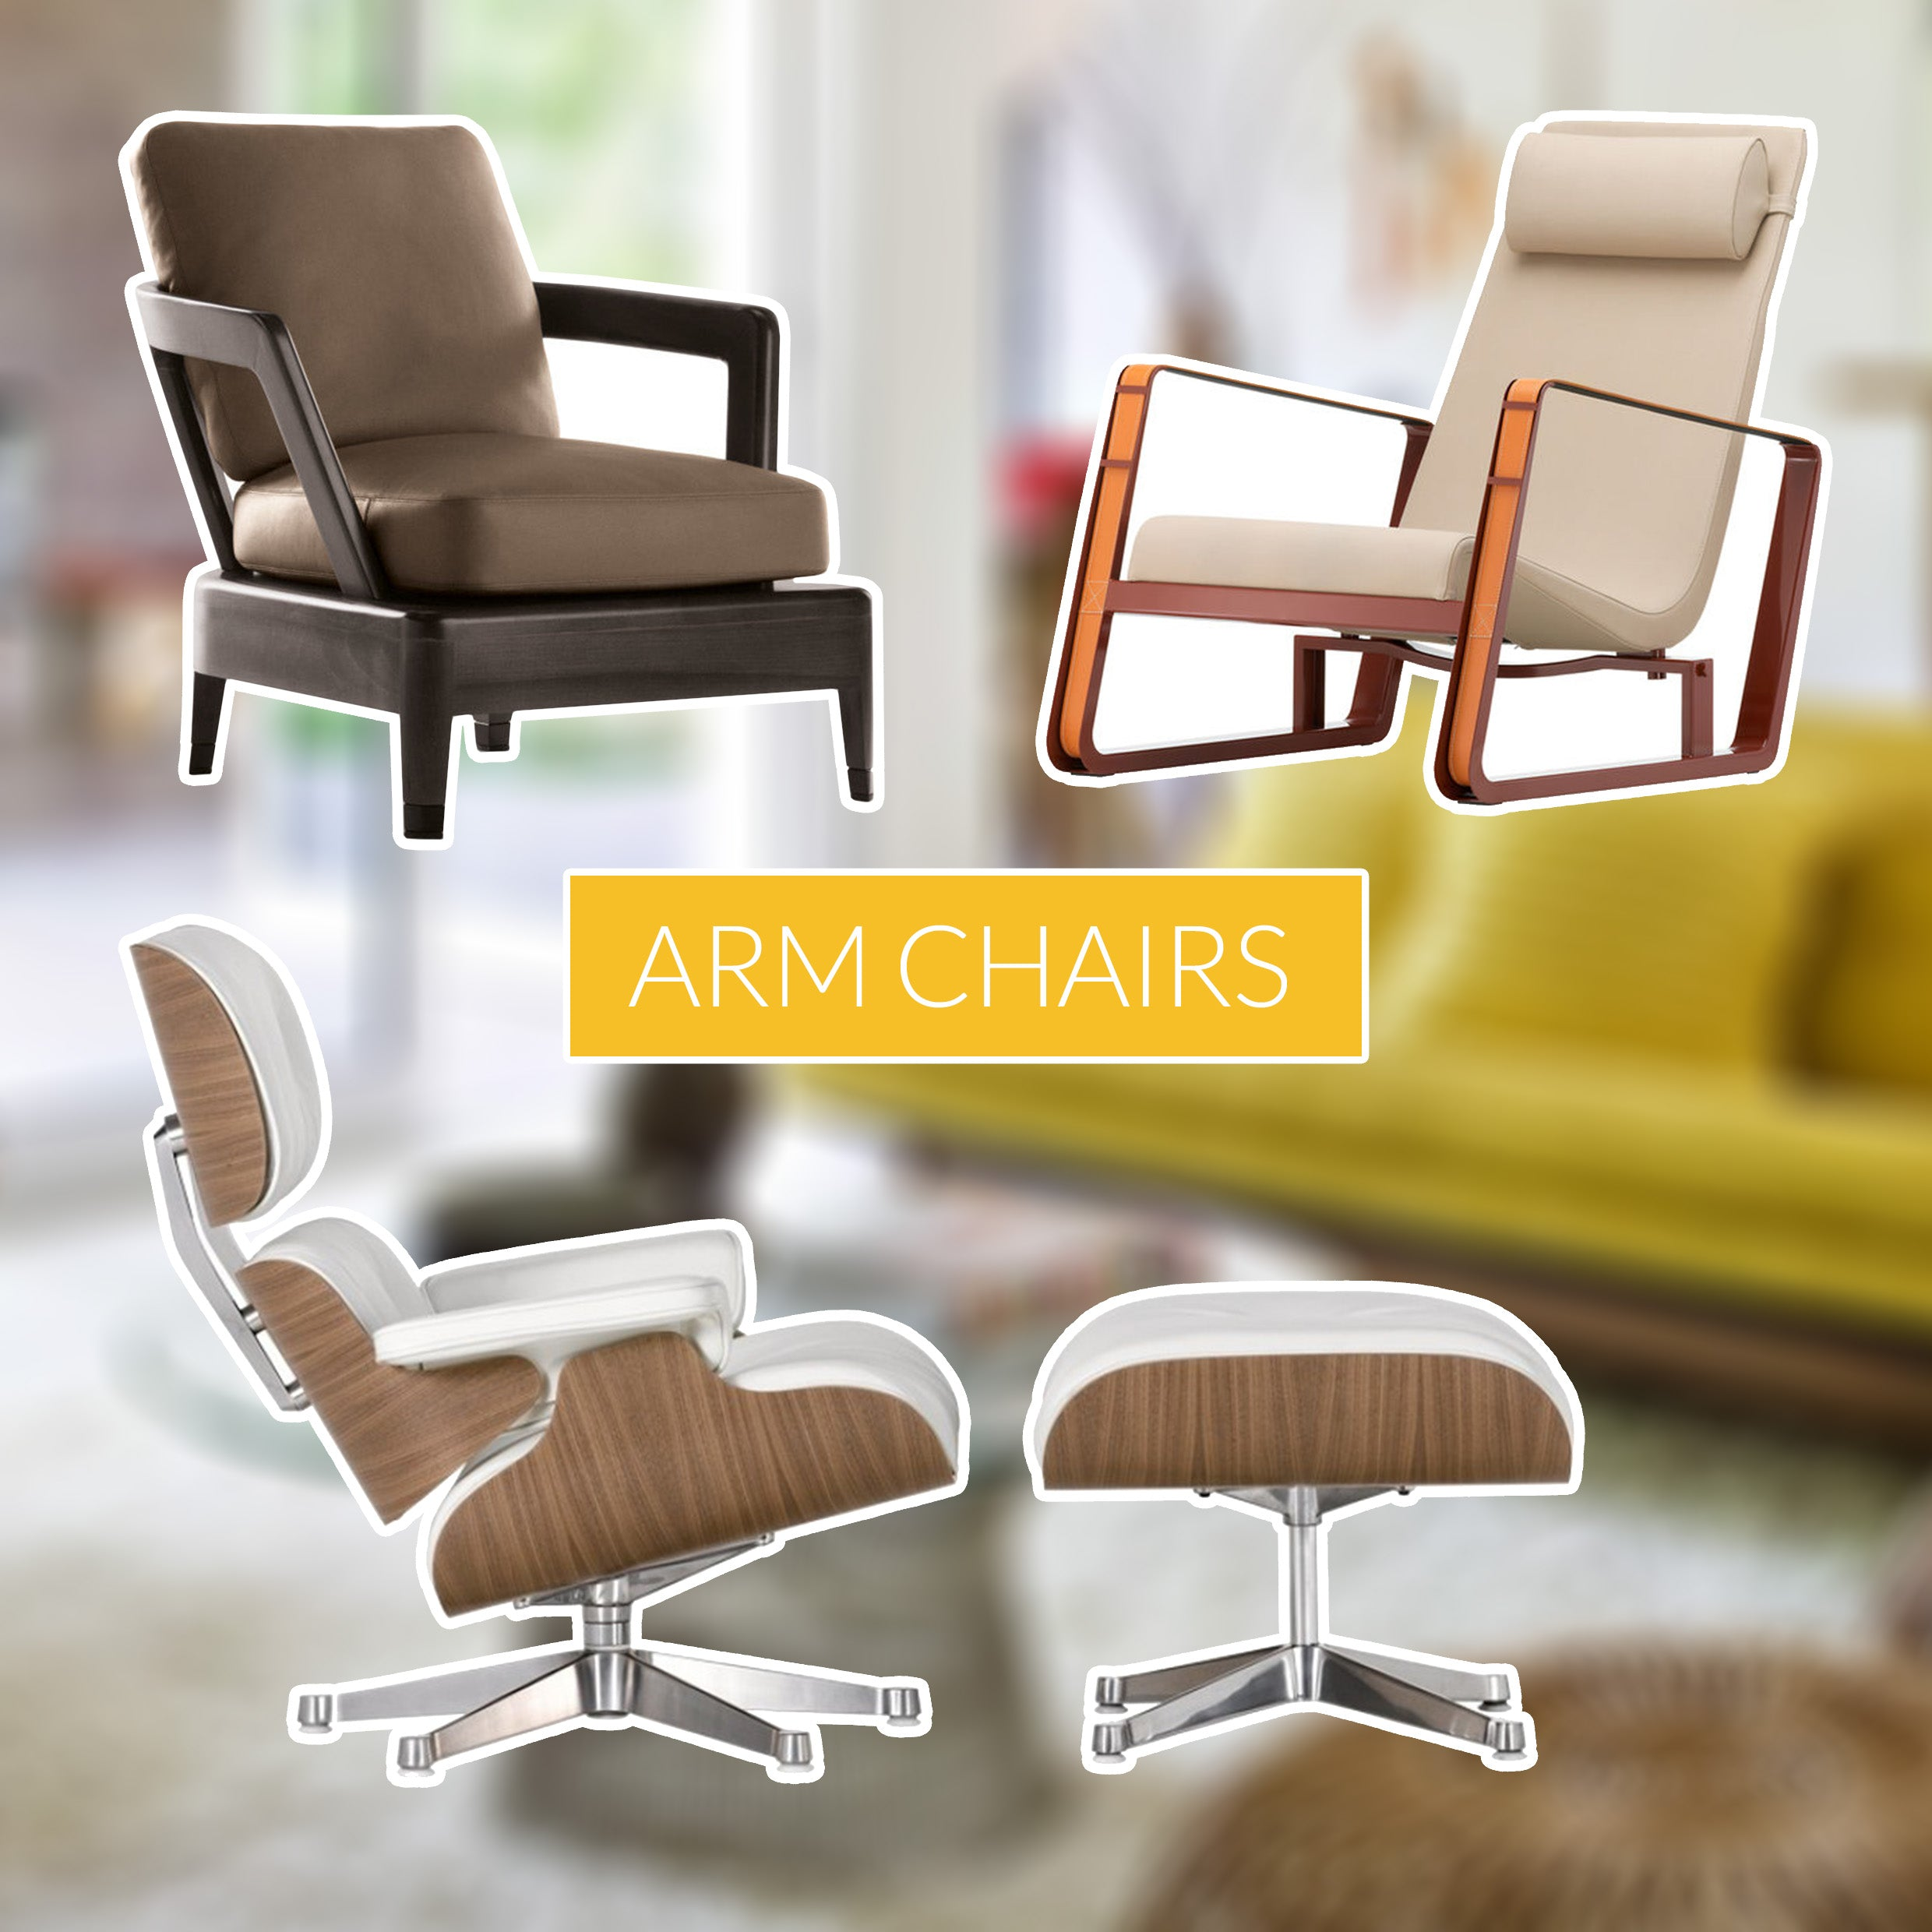 Mid Century Modern Chair and Furniture Inspiration